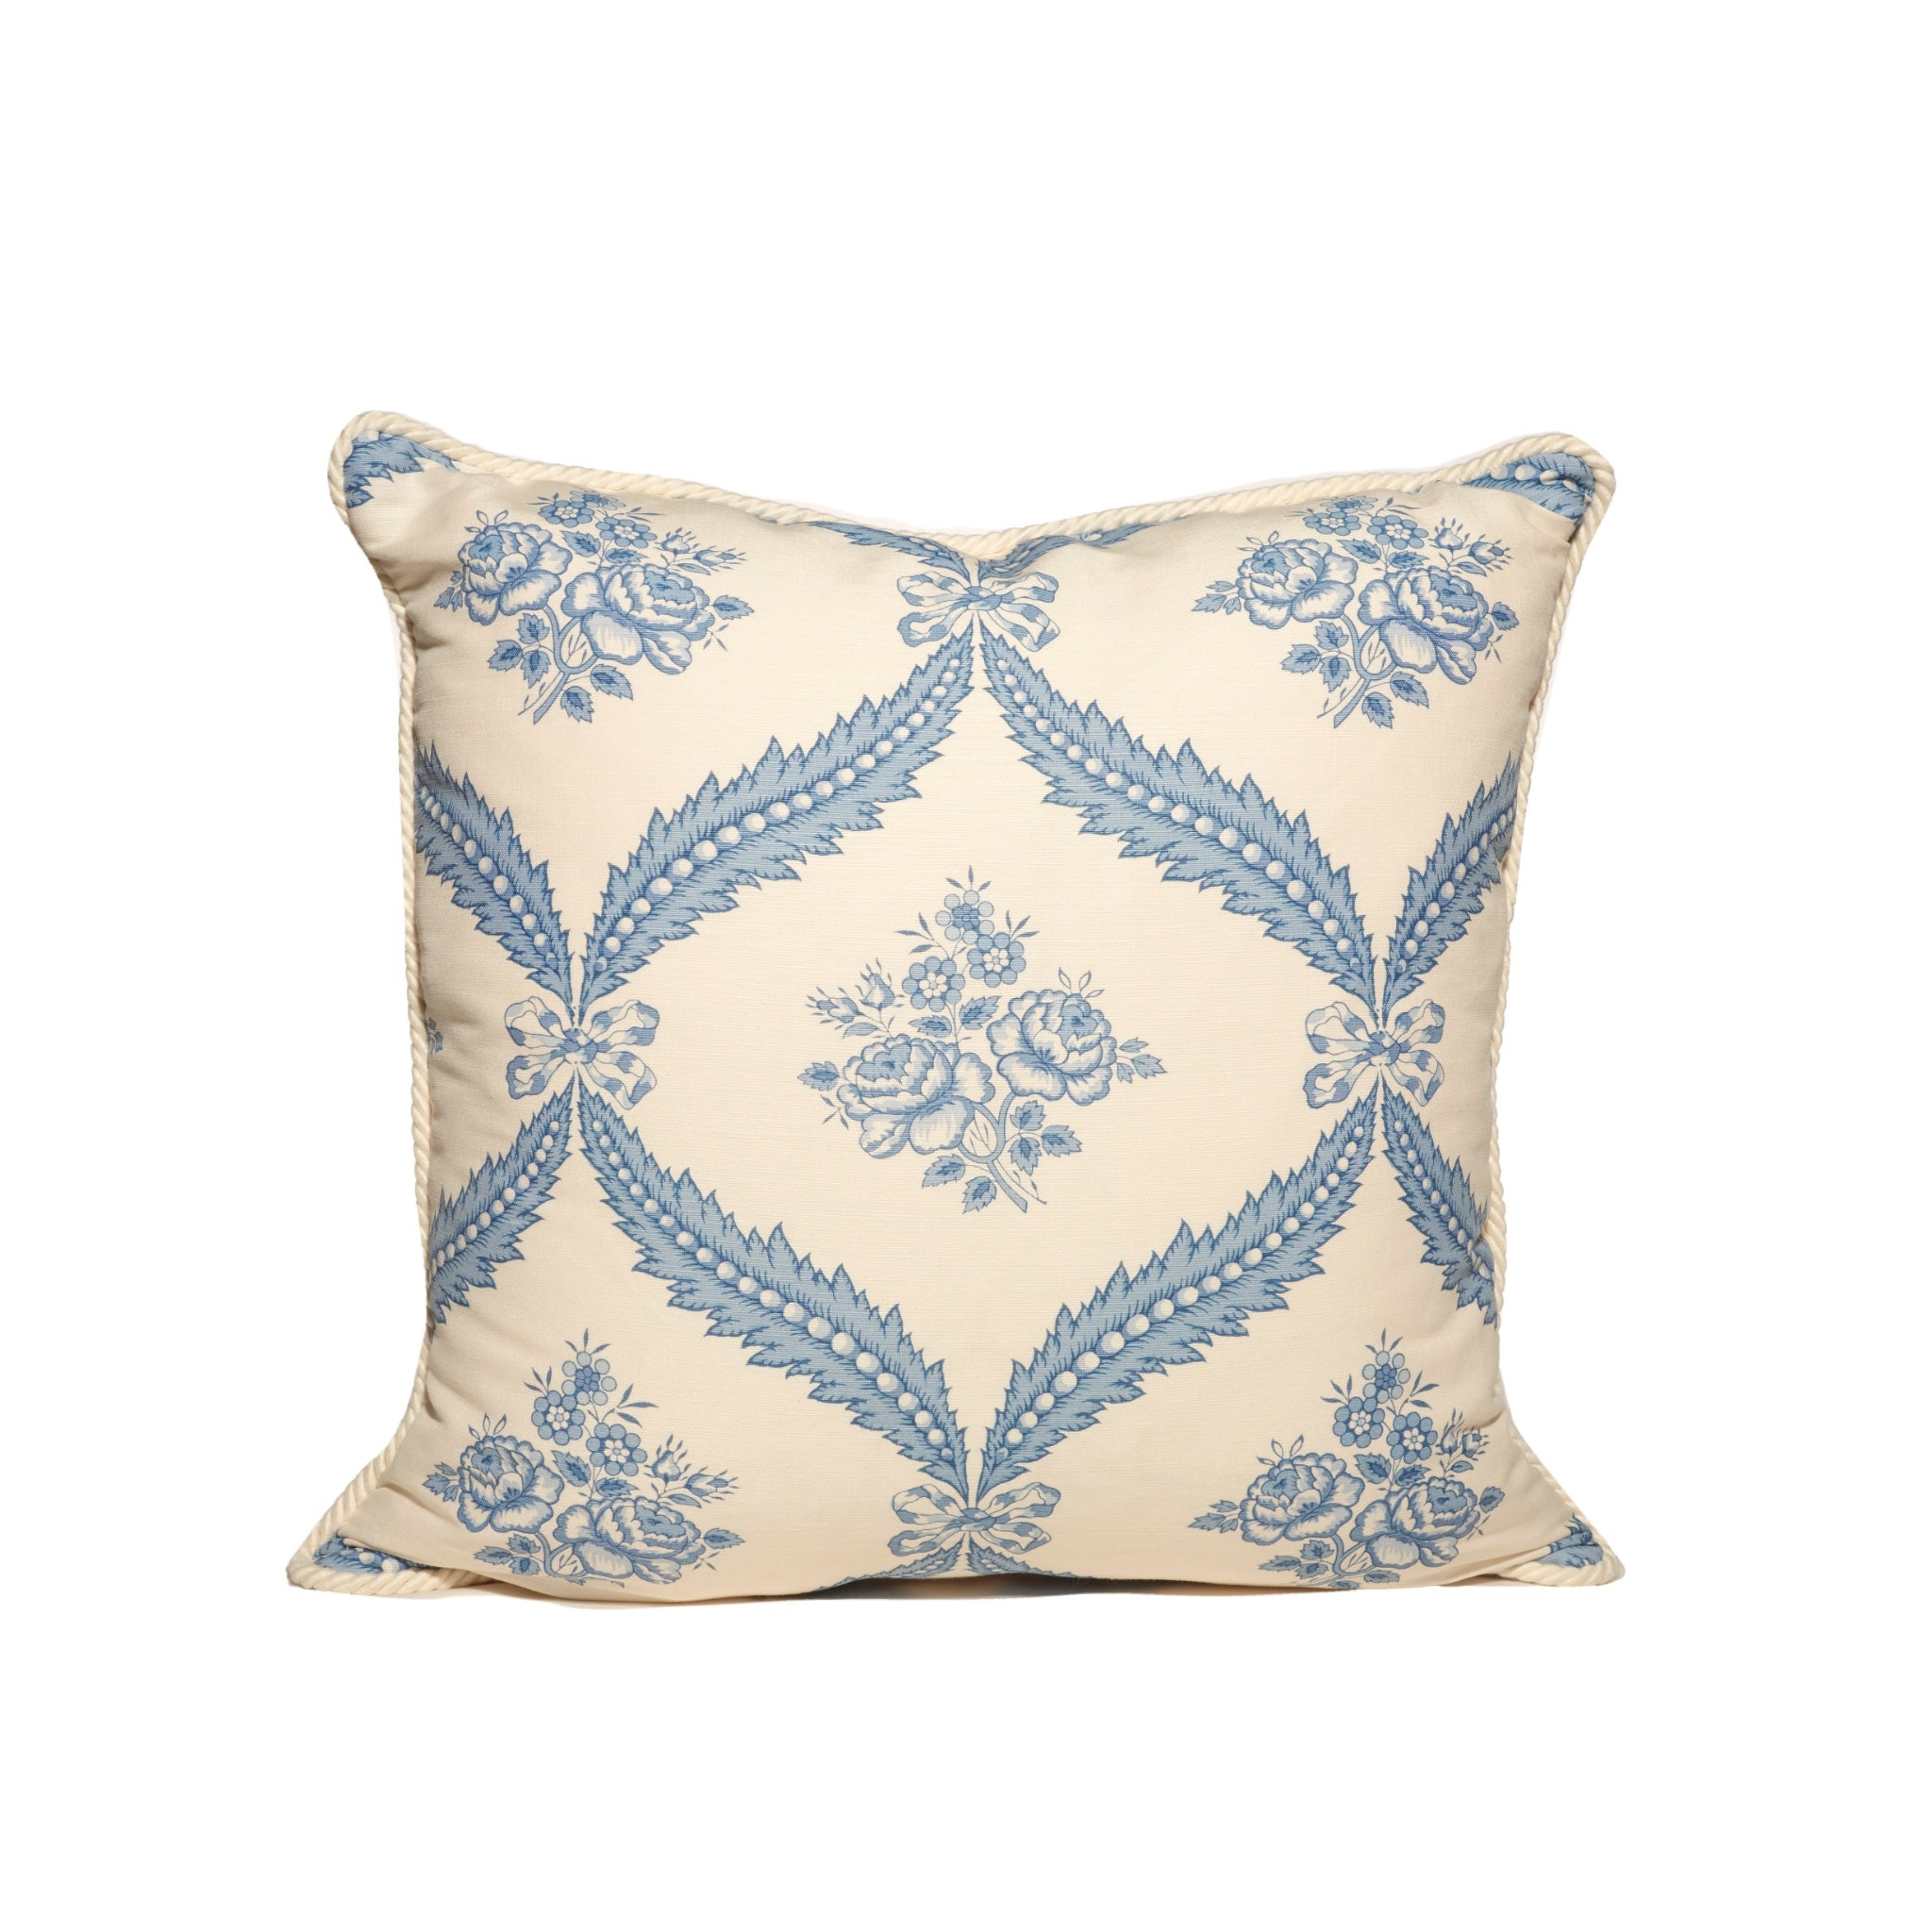 Blue and White Floral Pattern Pillows